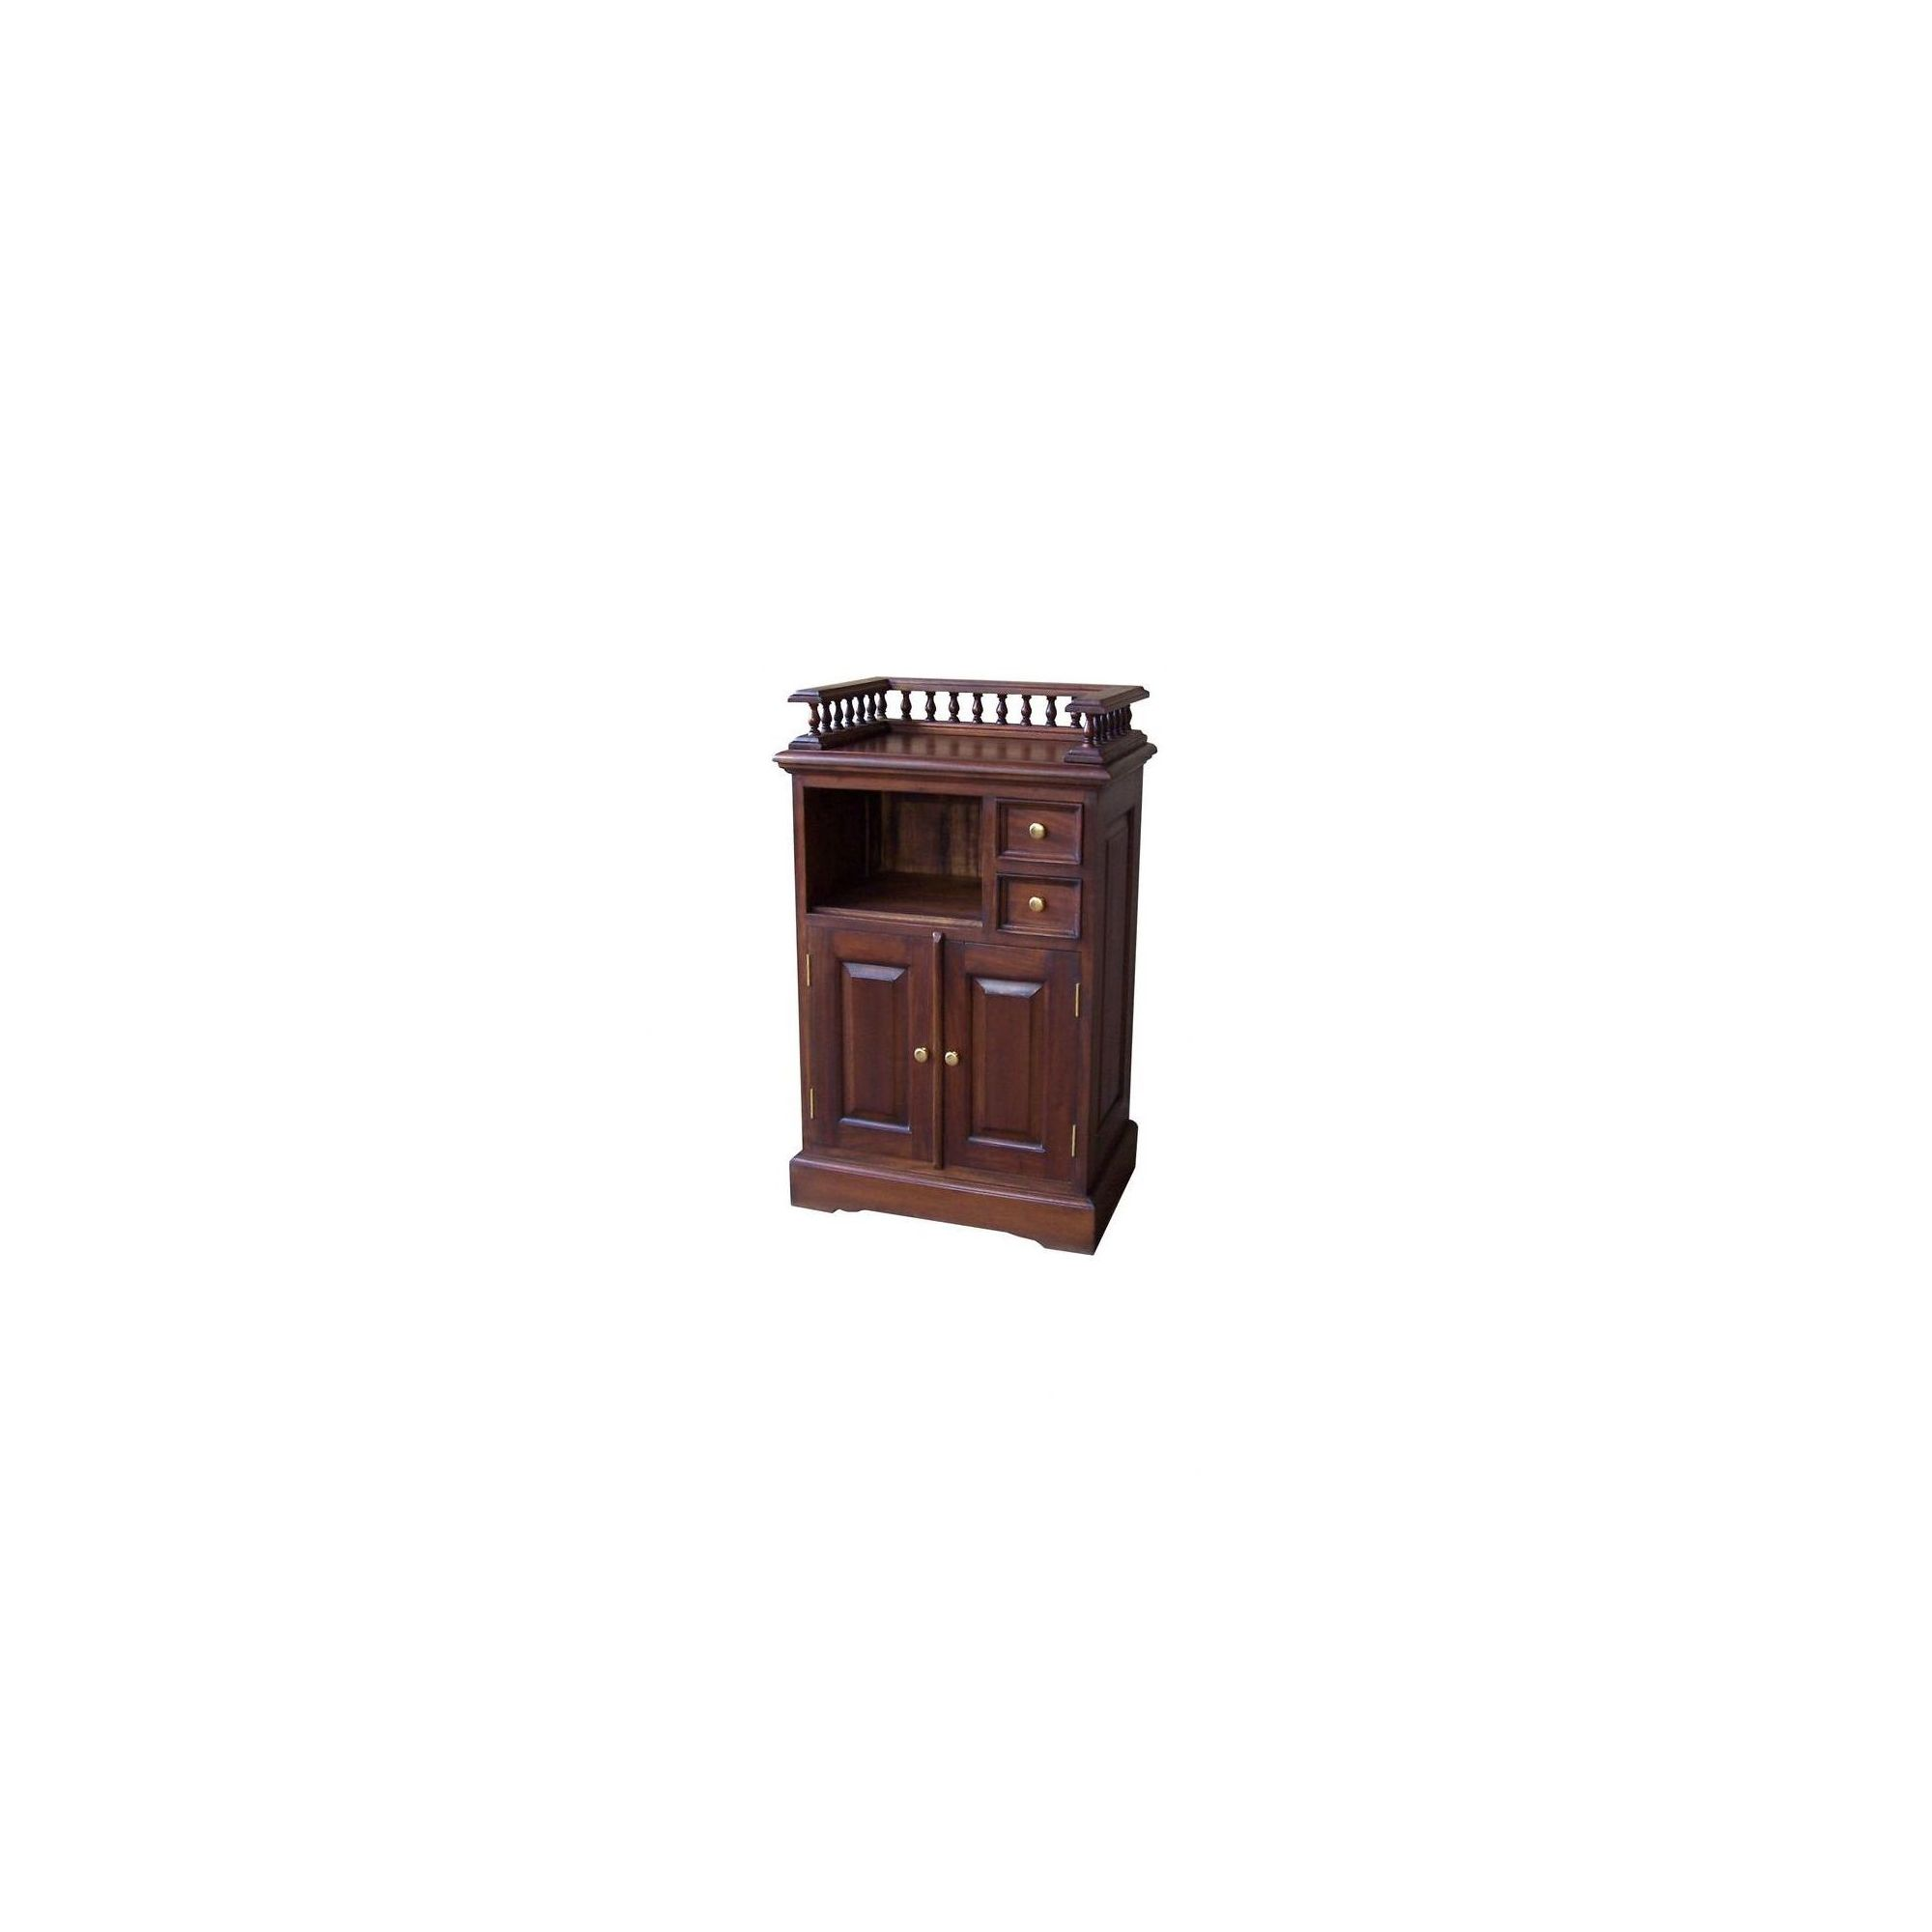 Lock stock and barrel Mahogany Telephone Stand with Gallery in Mahogany at Tesco Direct